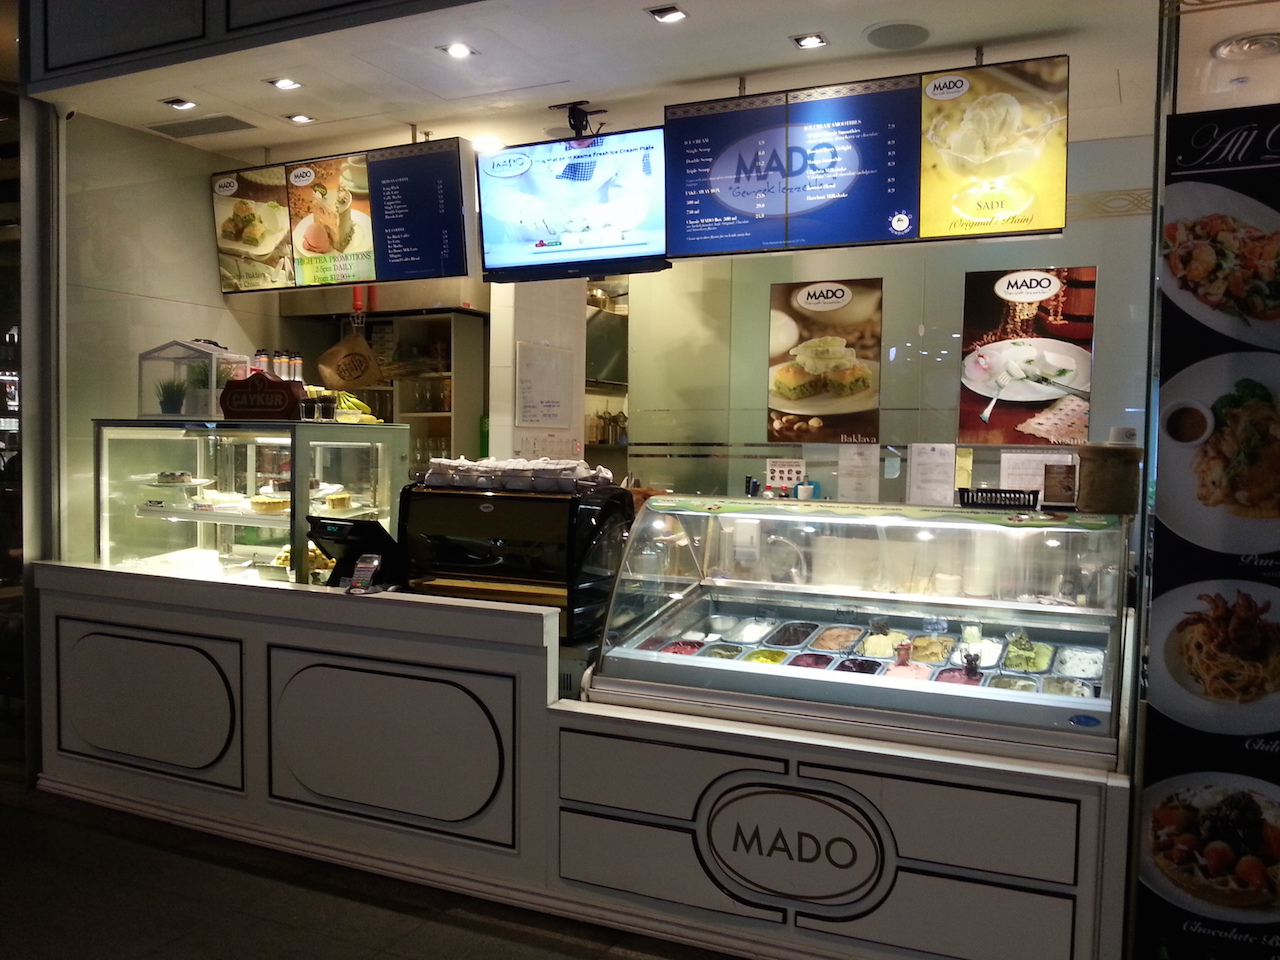 Mado Cafe at 50 Gateway Road